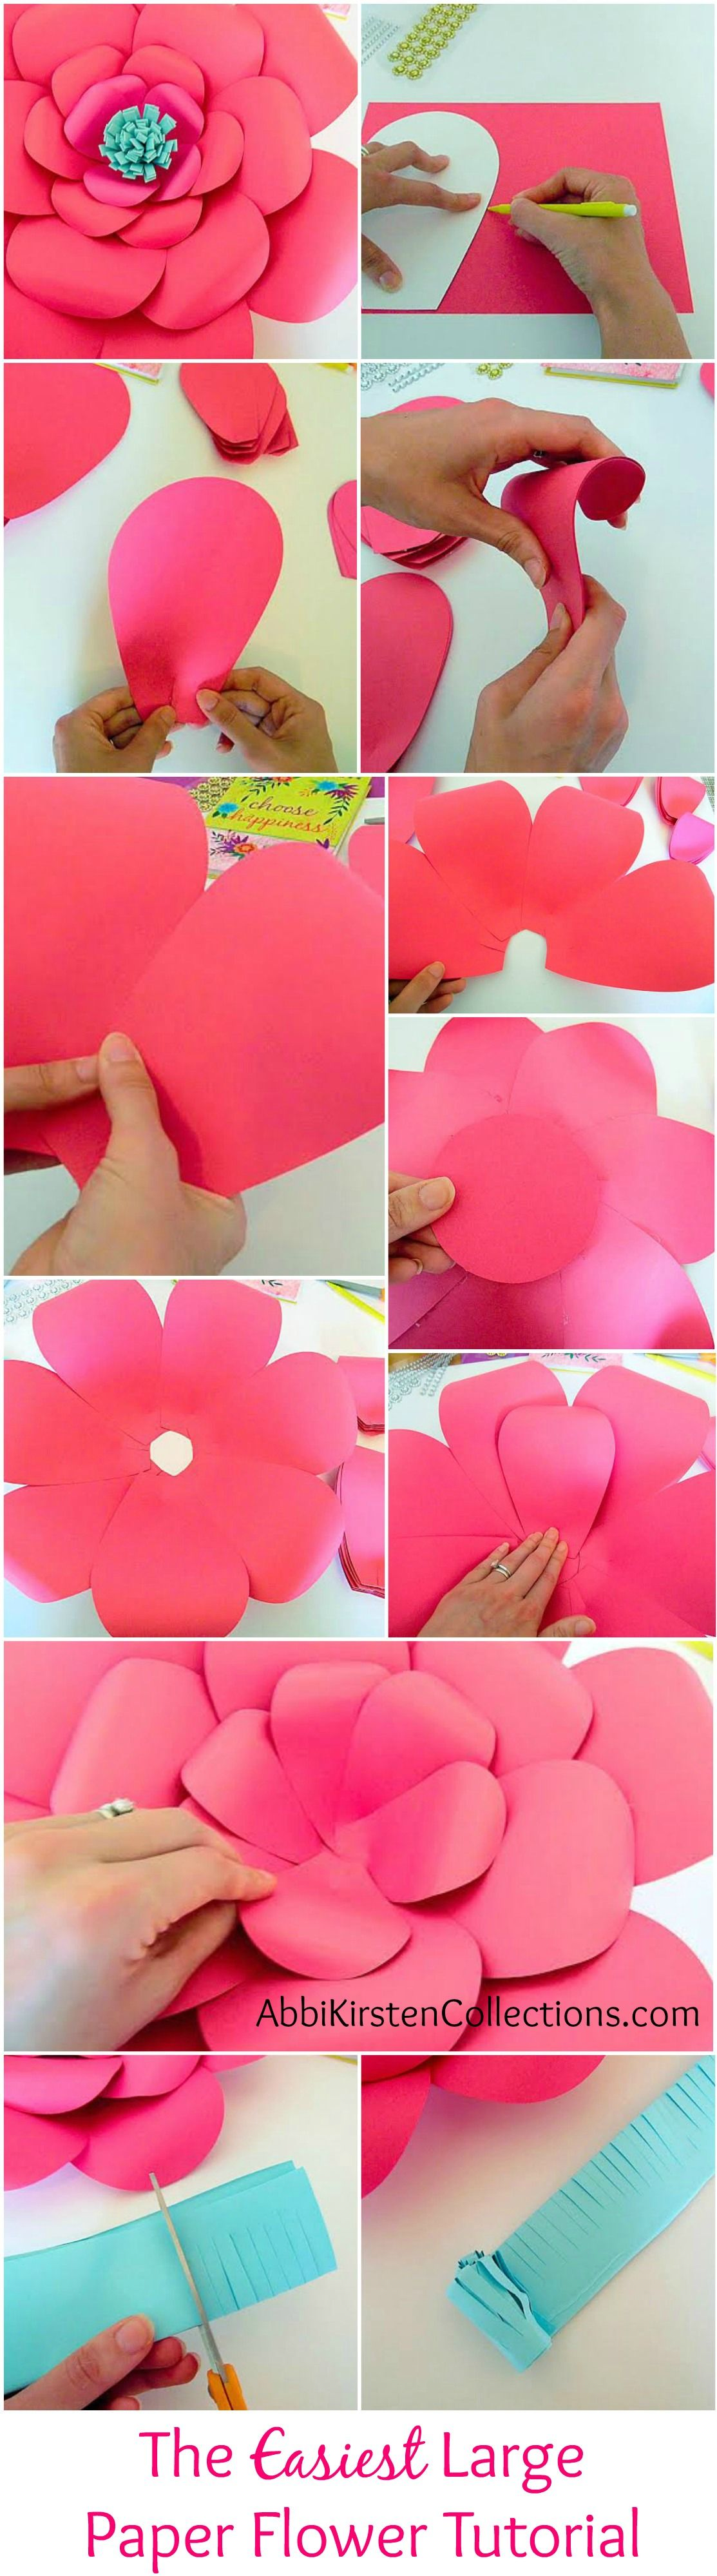 How To Make Large Paper Flowers Easy Diy Giant Paper Flower Large